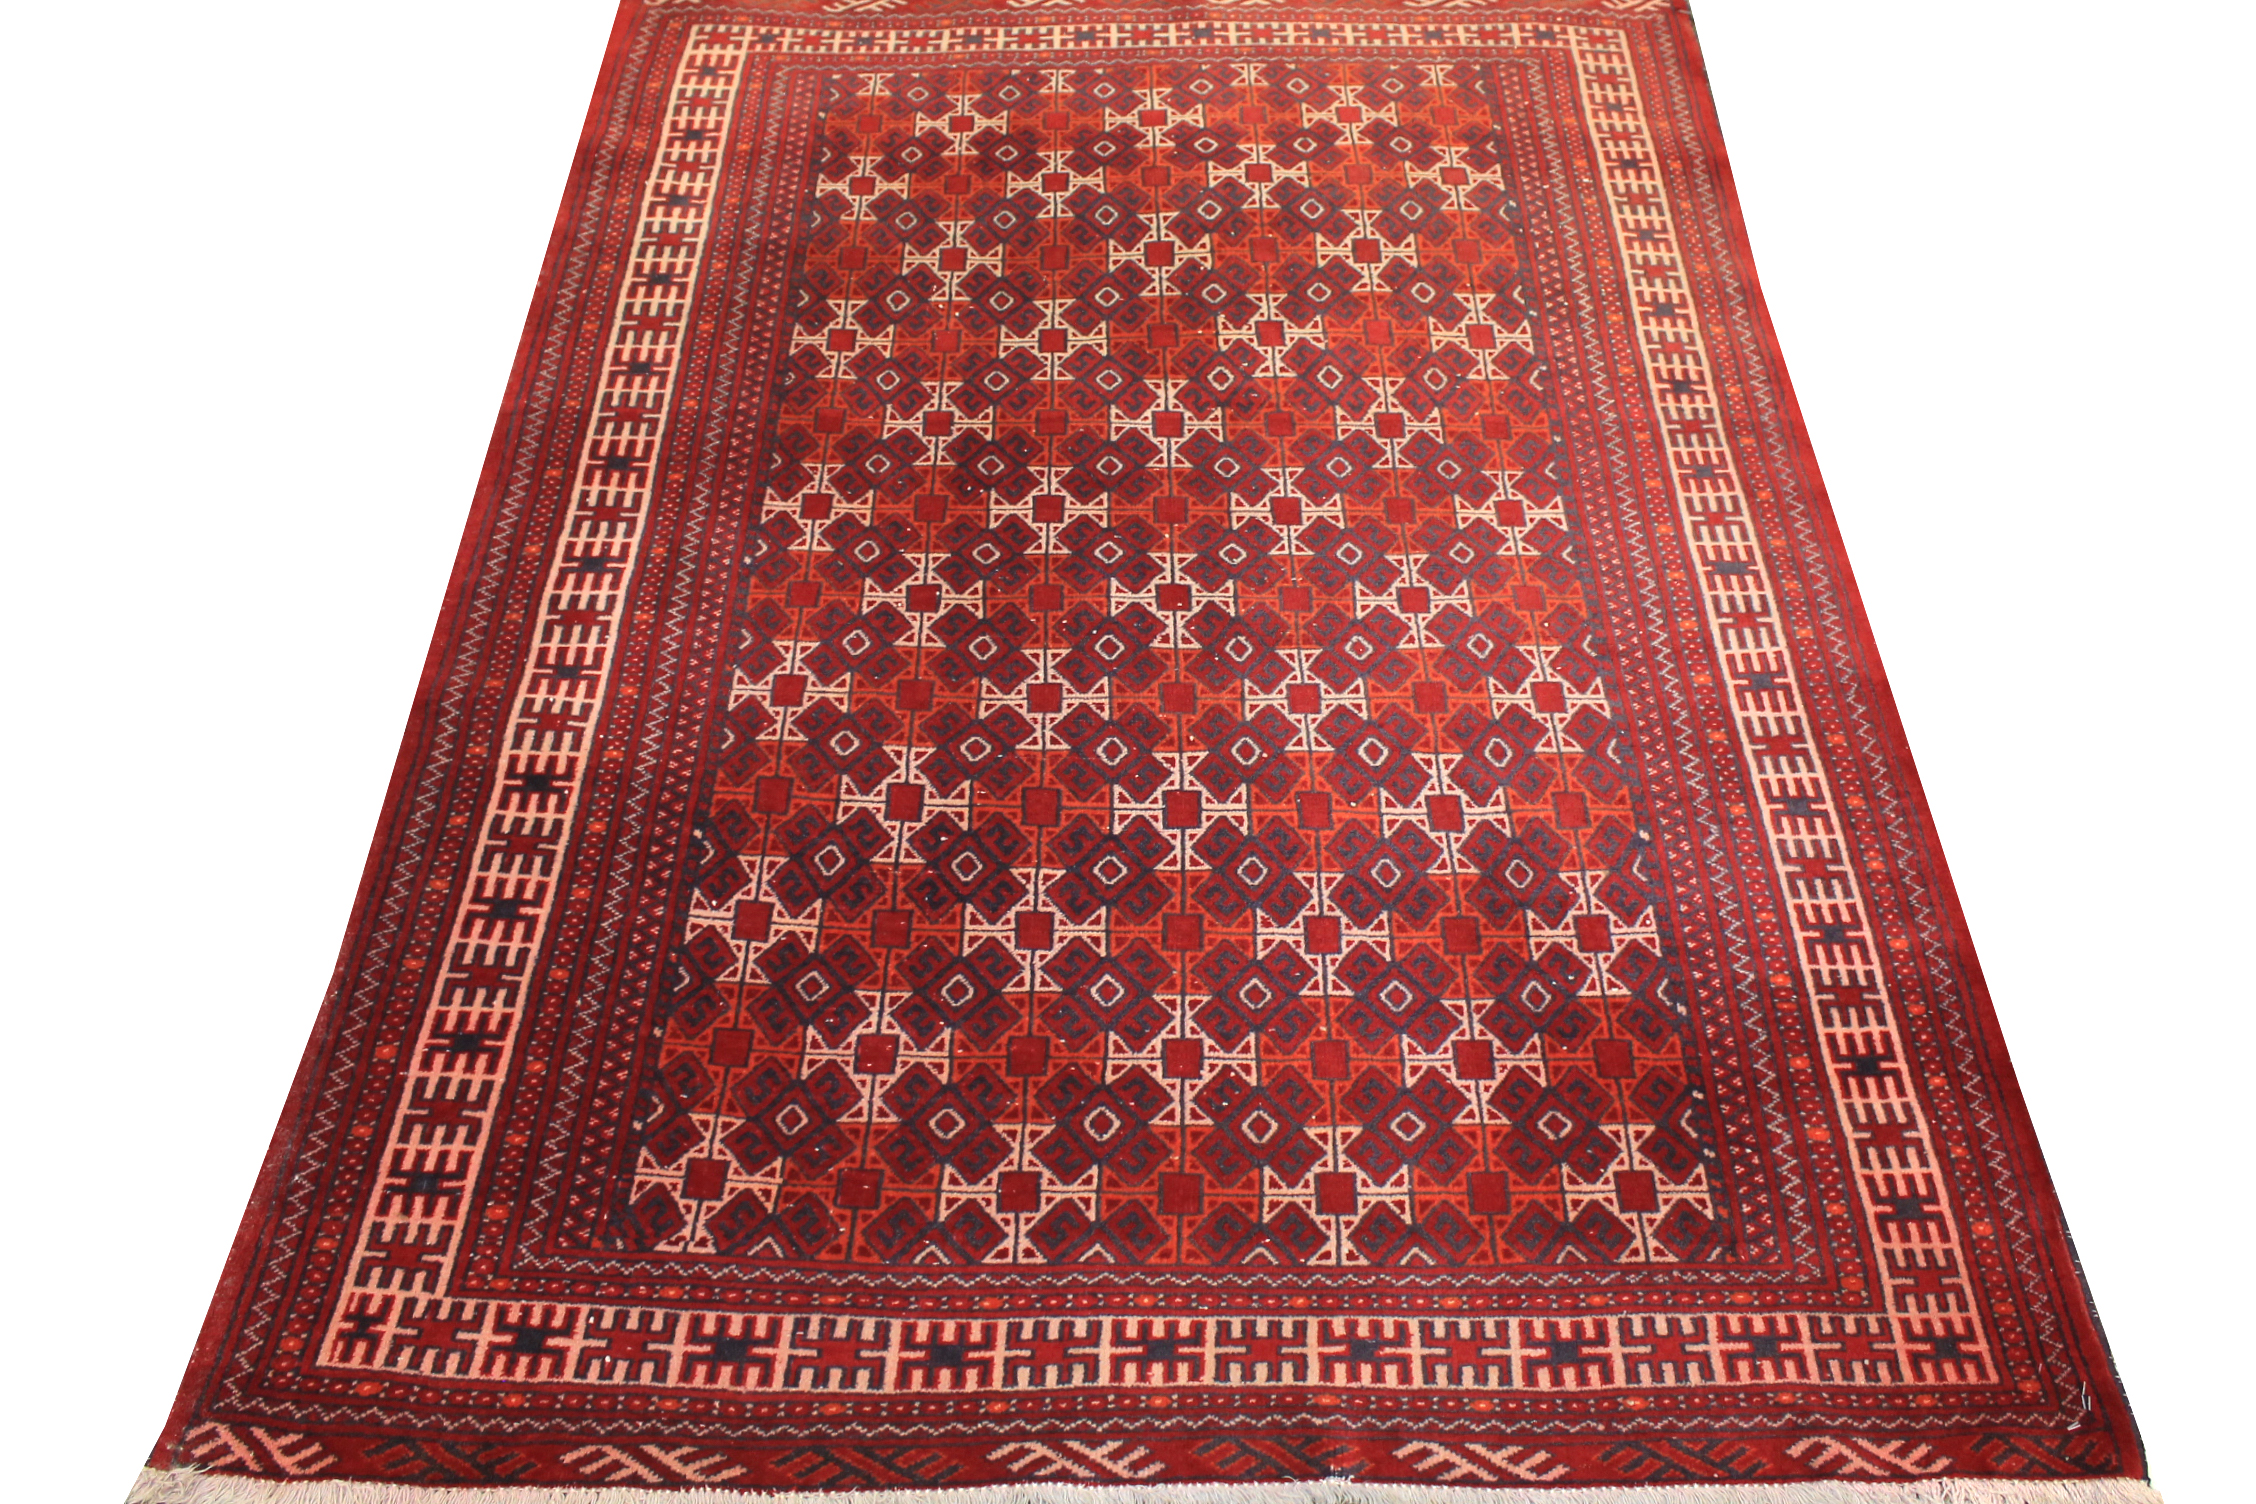 4x6 Kazak Hand Knotted Wool Area Rug - MR0569